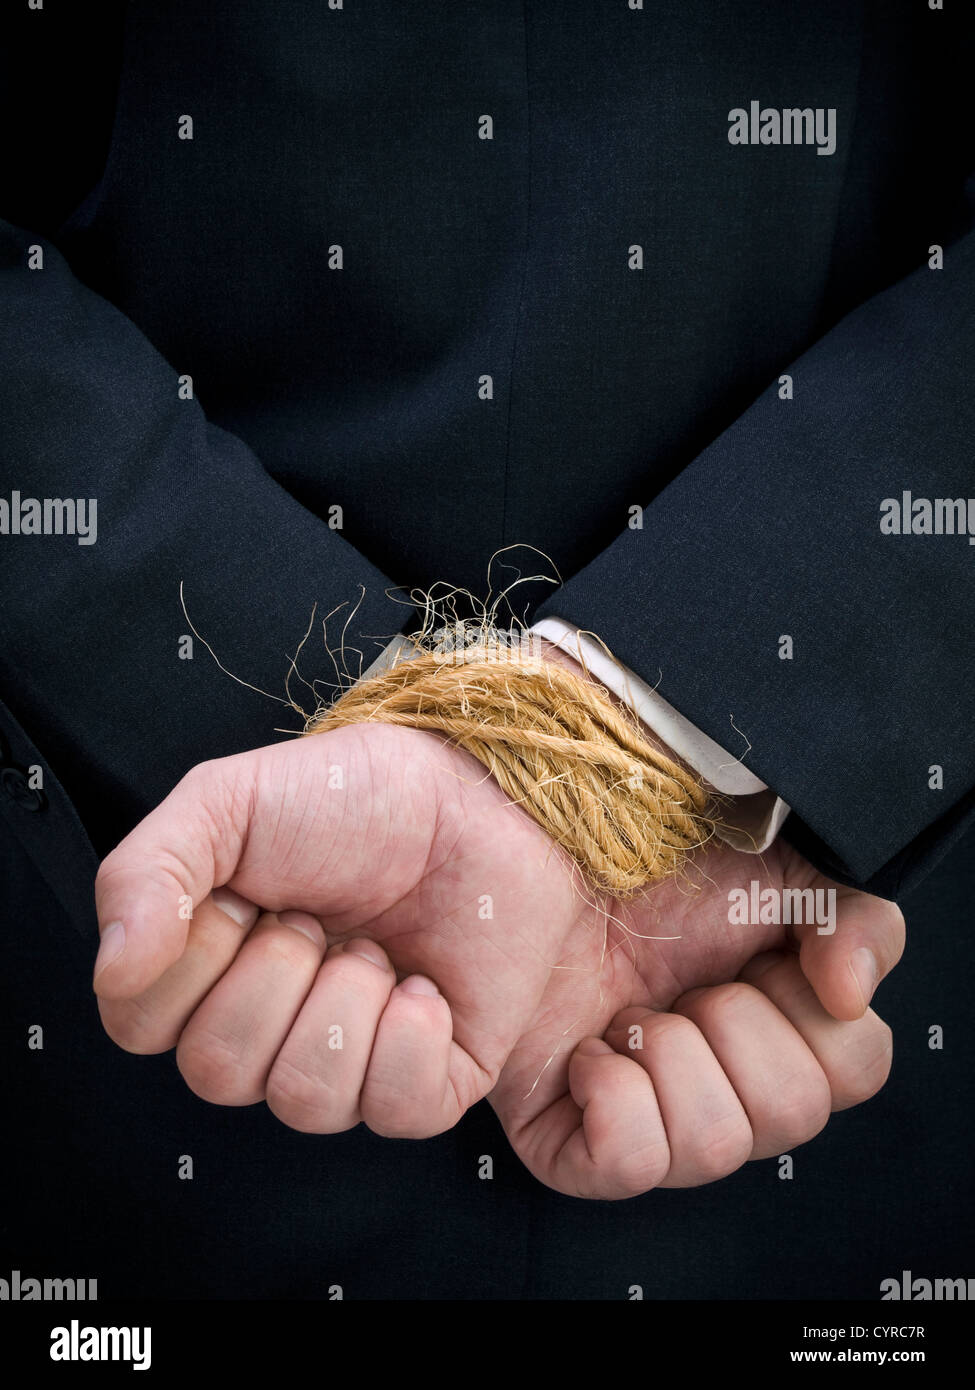 Closeup on a businessman's tied up hands. - Stock Image